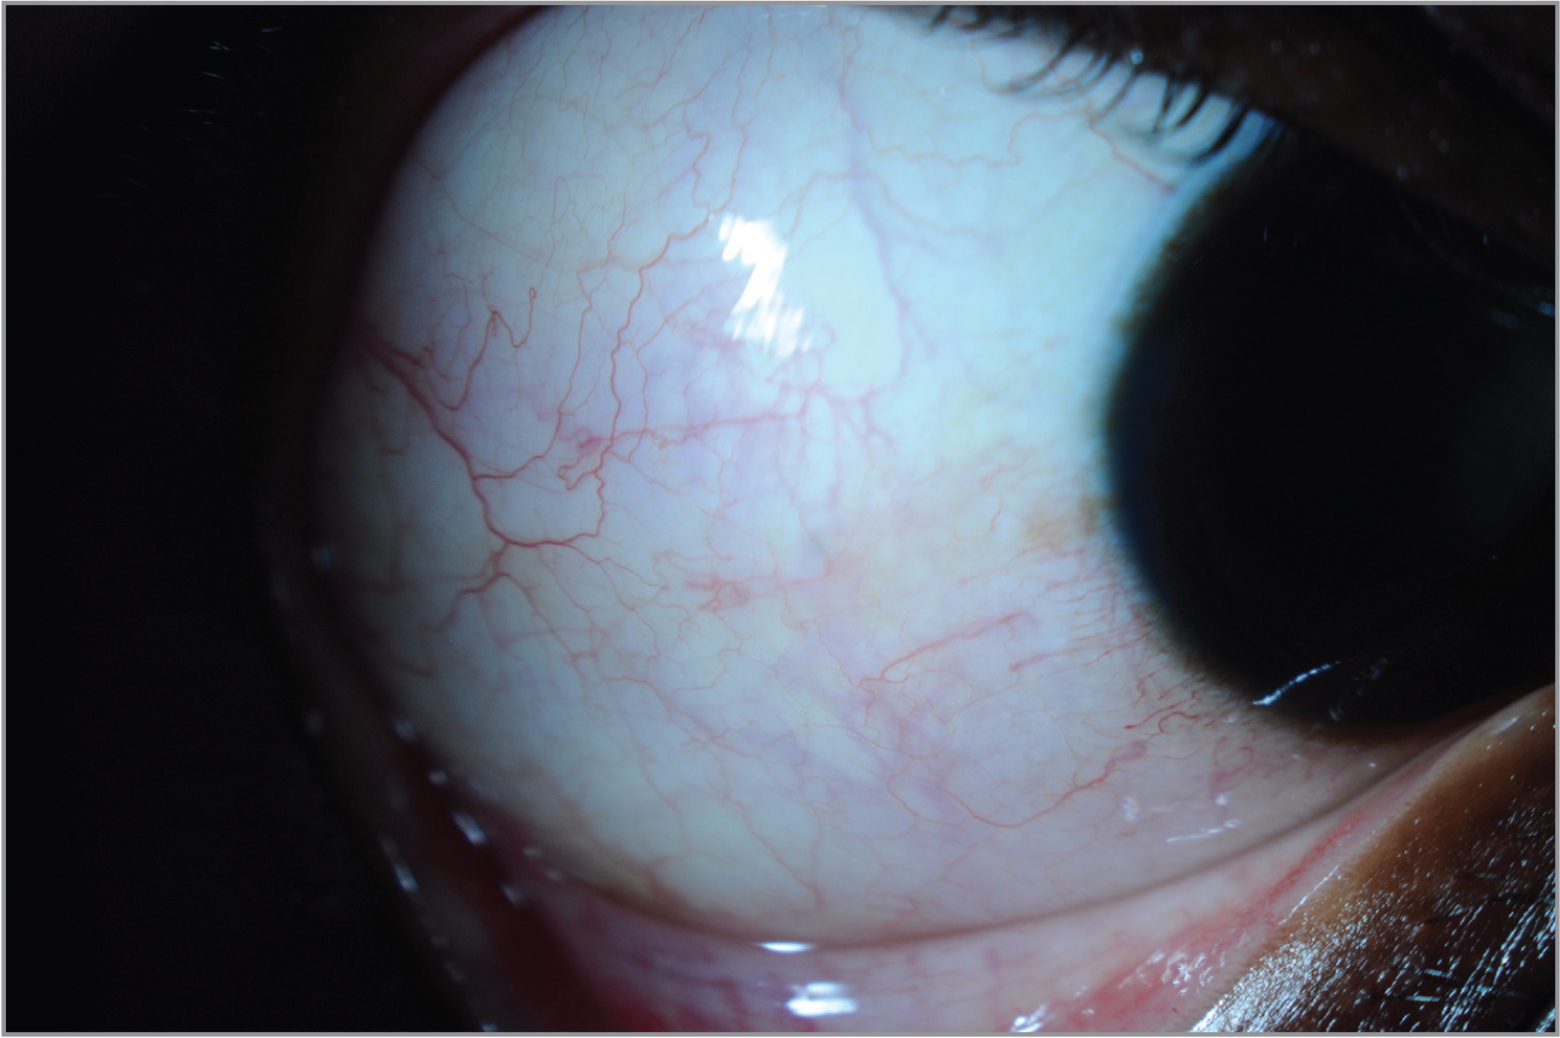 Anterior segment photograph of the right eye demonstrating mild, perilimbal vascular tortuosity, mild conjunctival hyperemia, and diffuse pink episcleral vascular congestion.